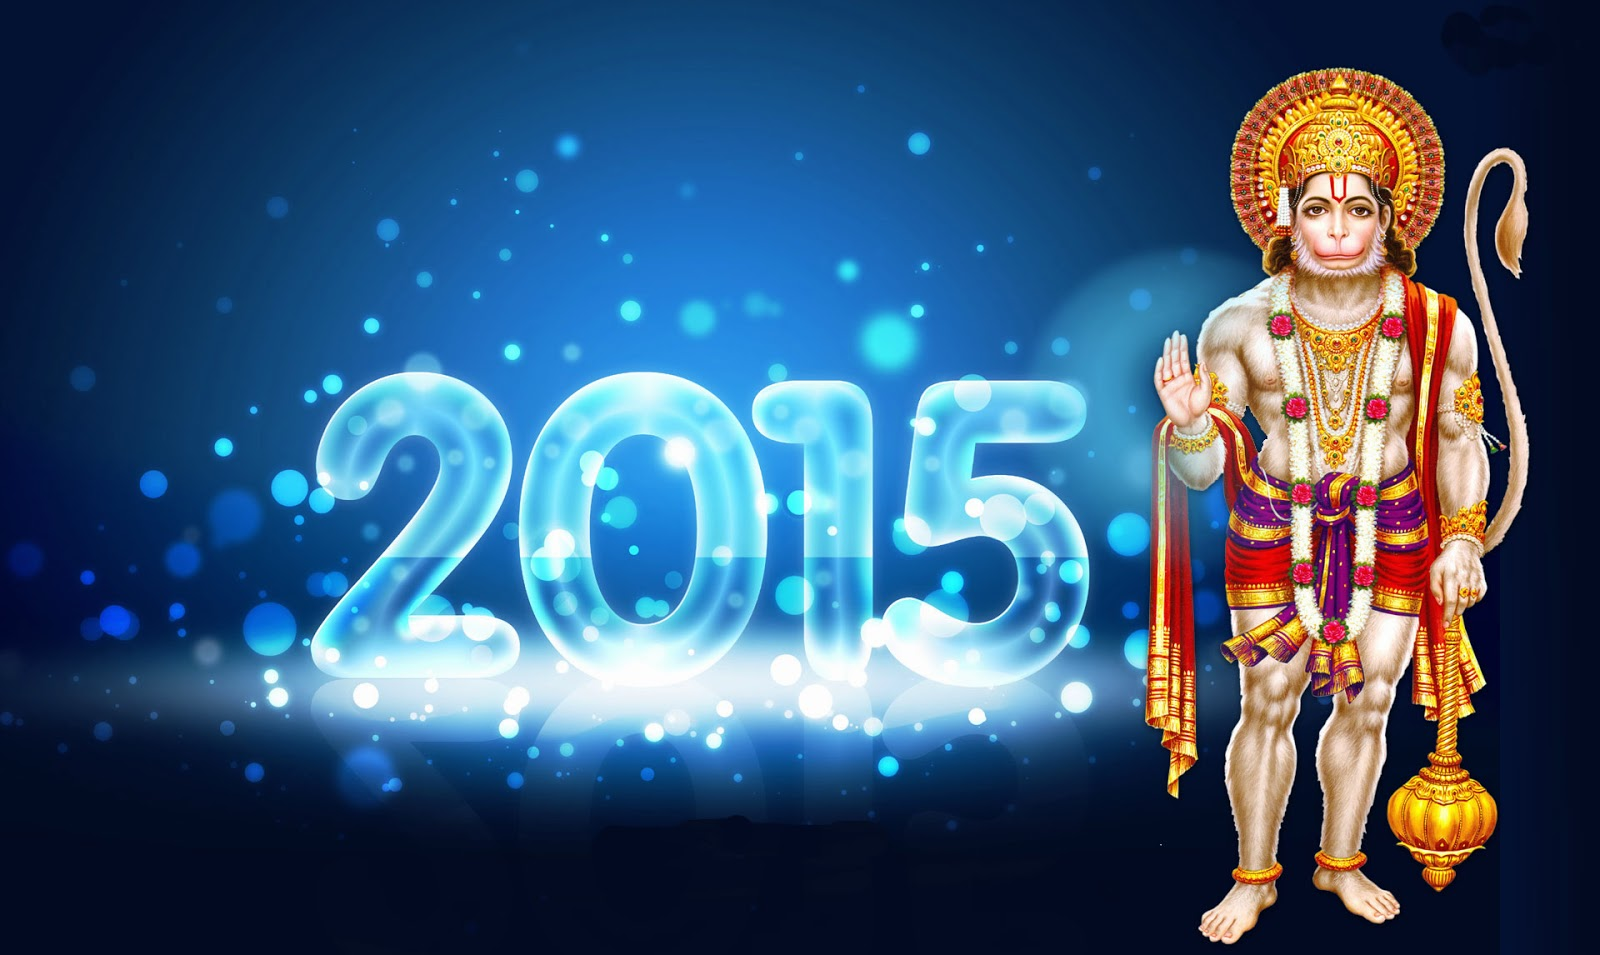 happy new year 2015 hd wallpapers best new year wishes